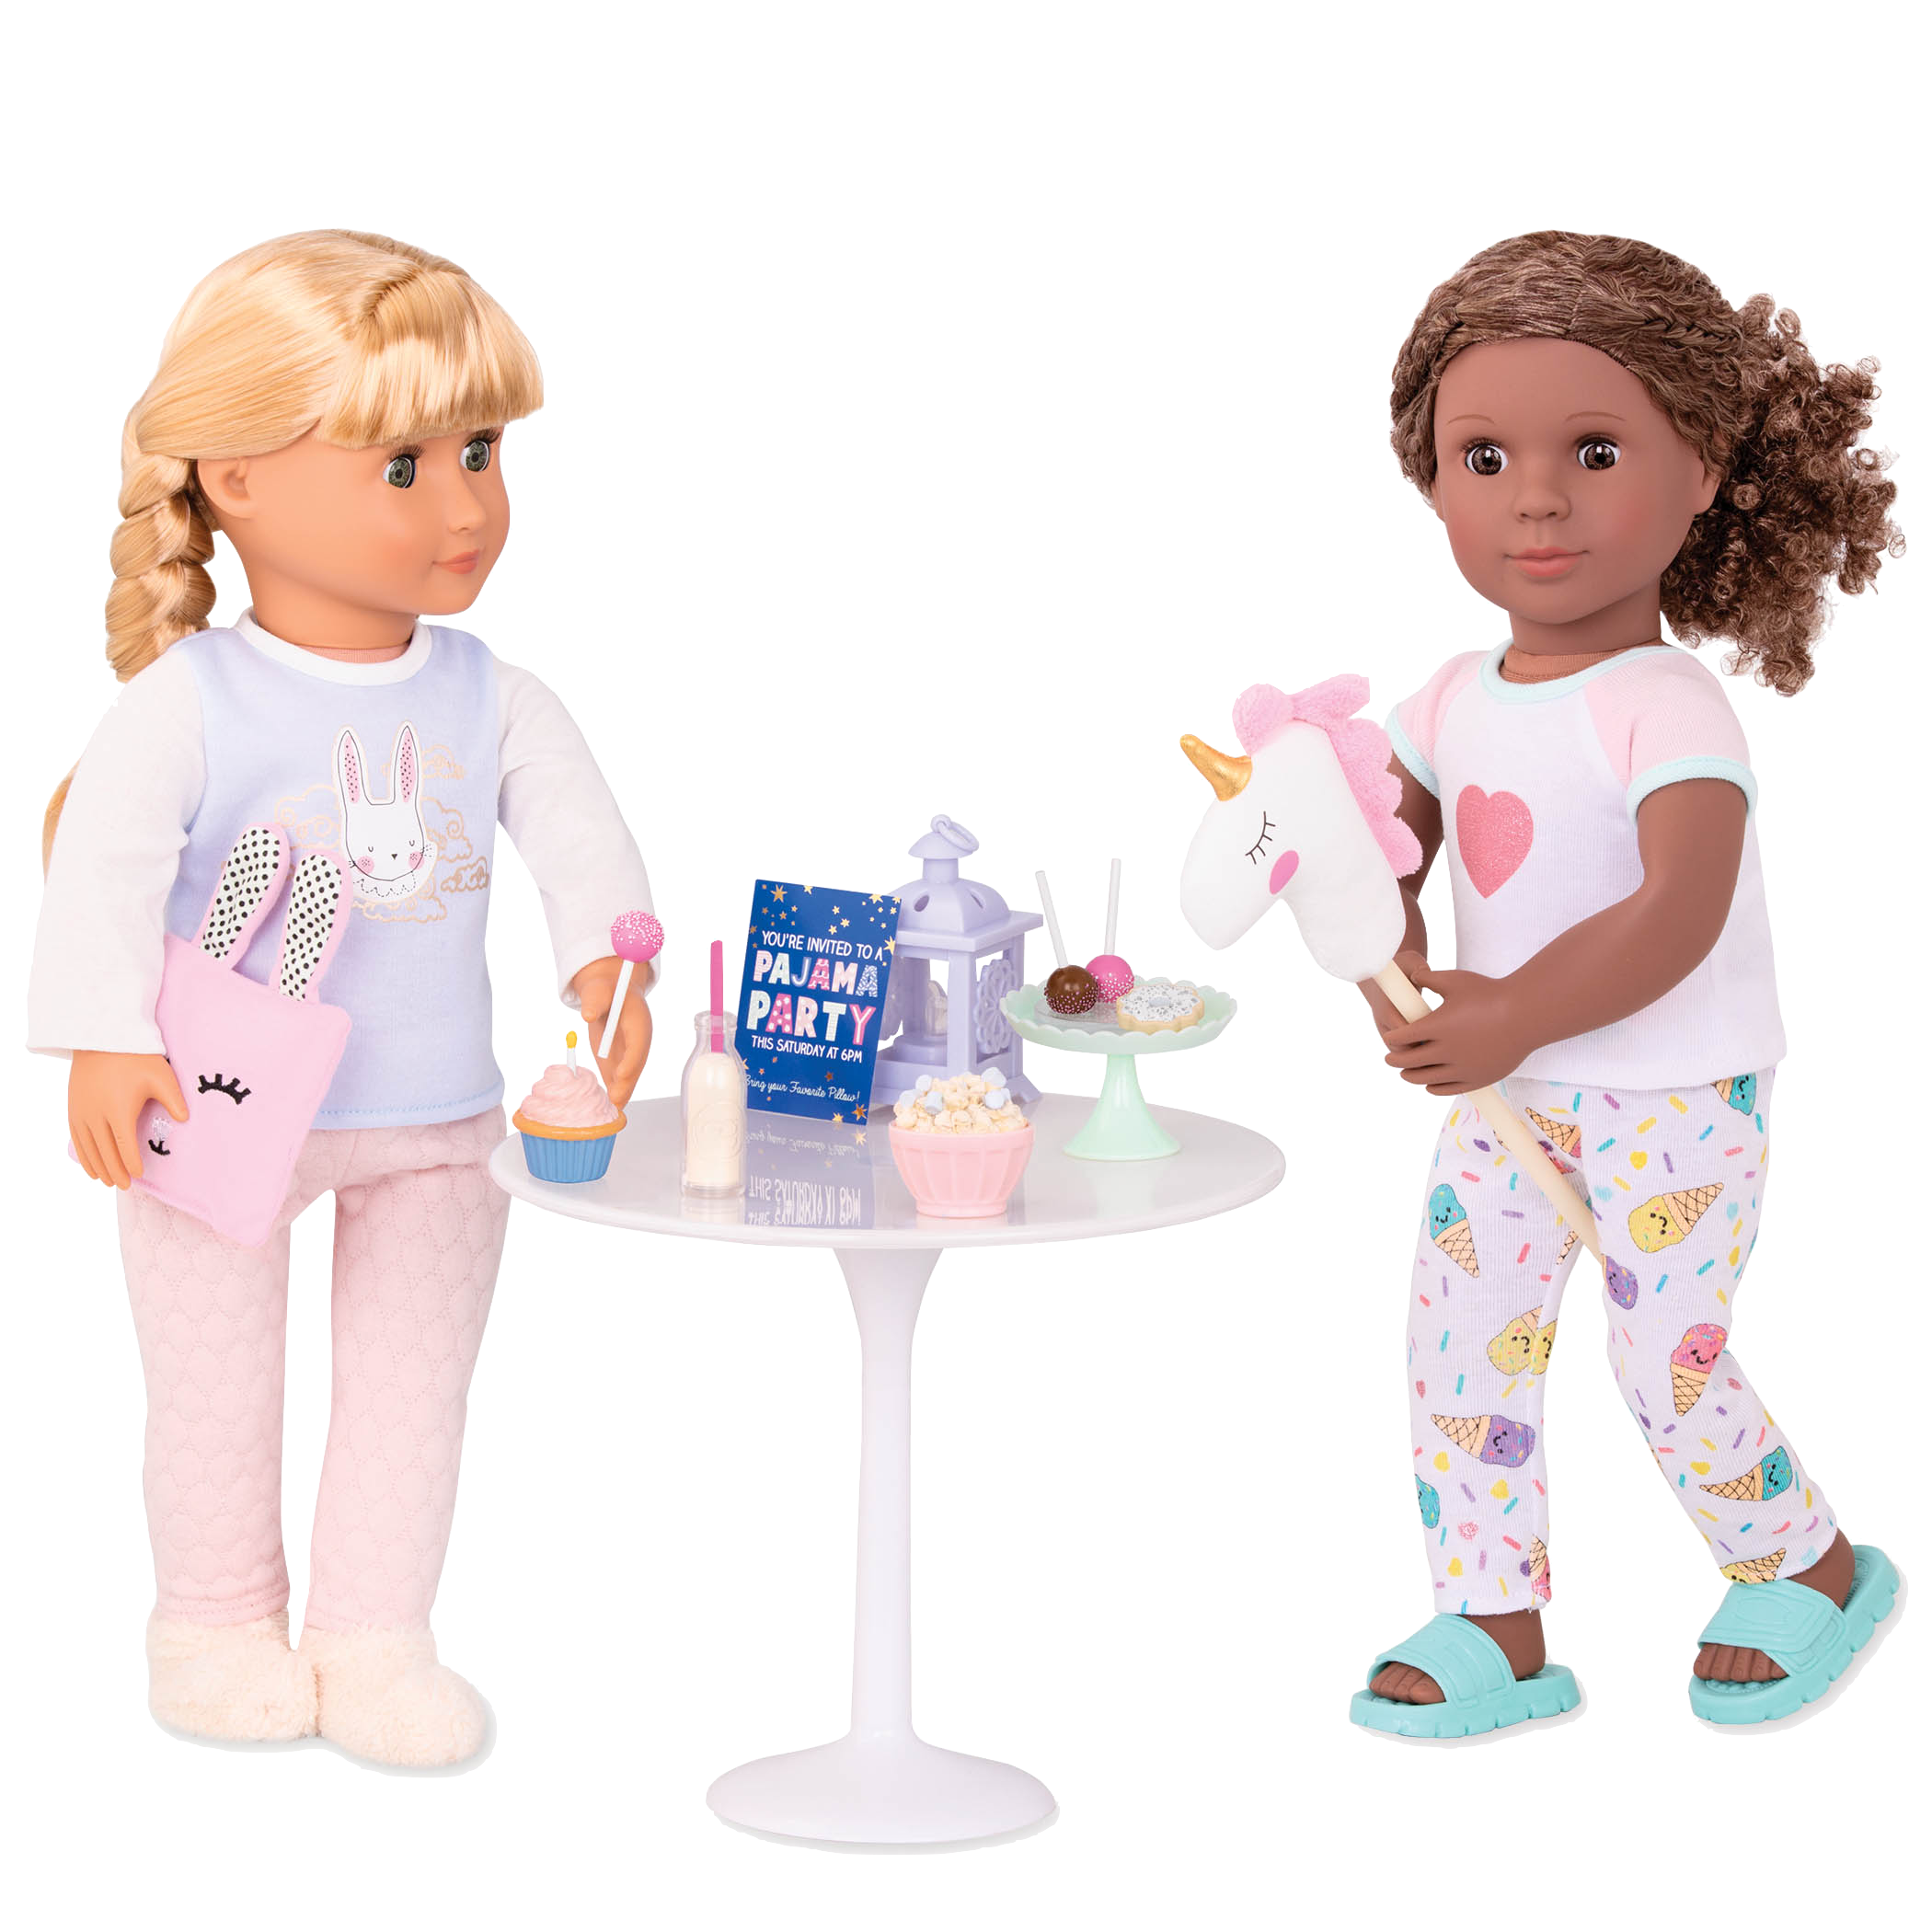 Having a unicorn at your slumber party is so much more fun!